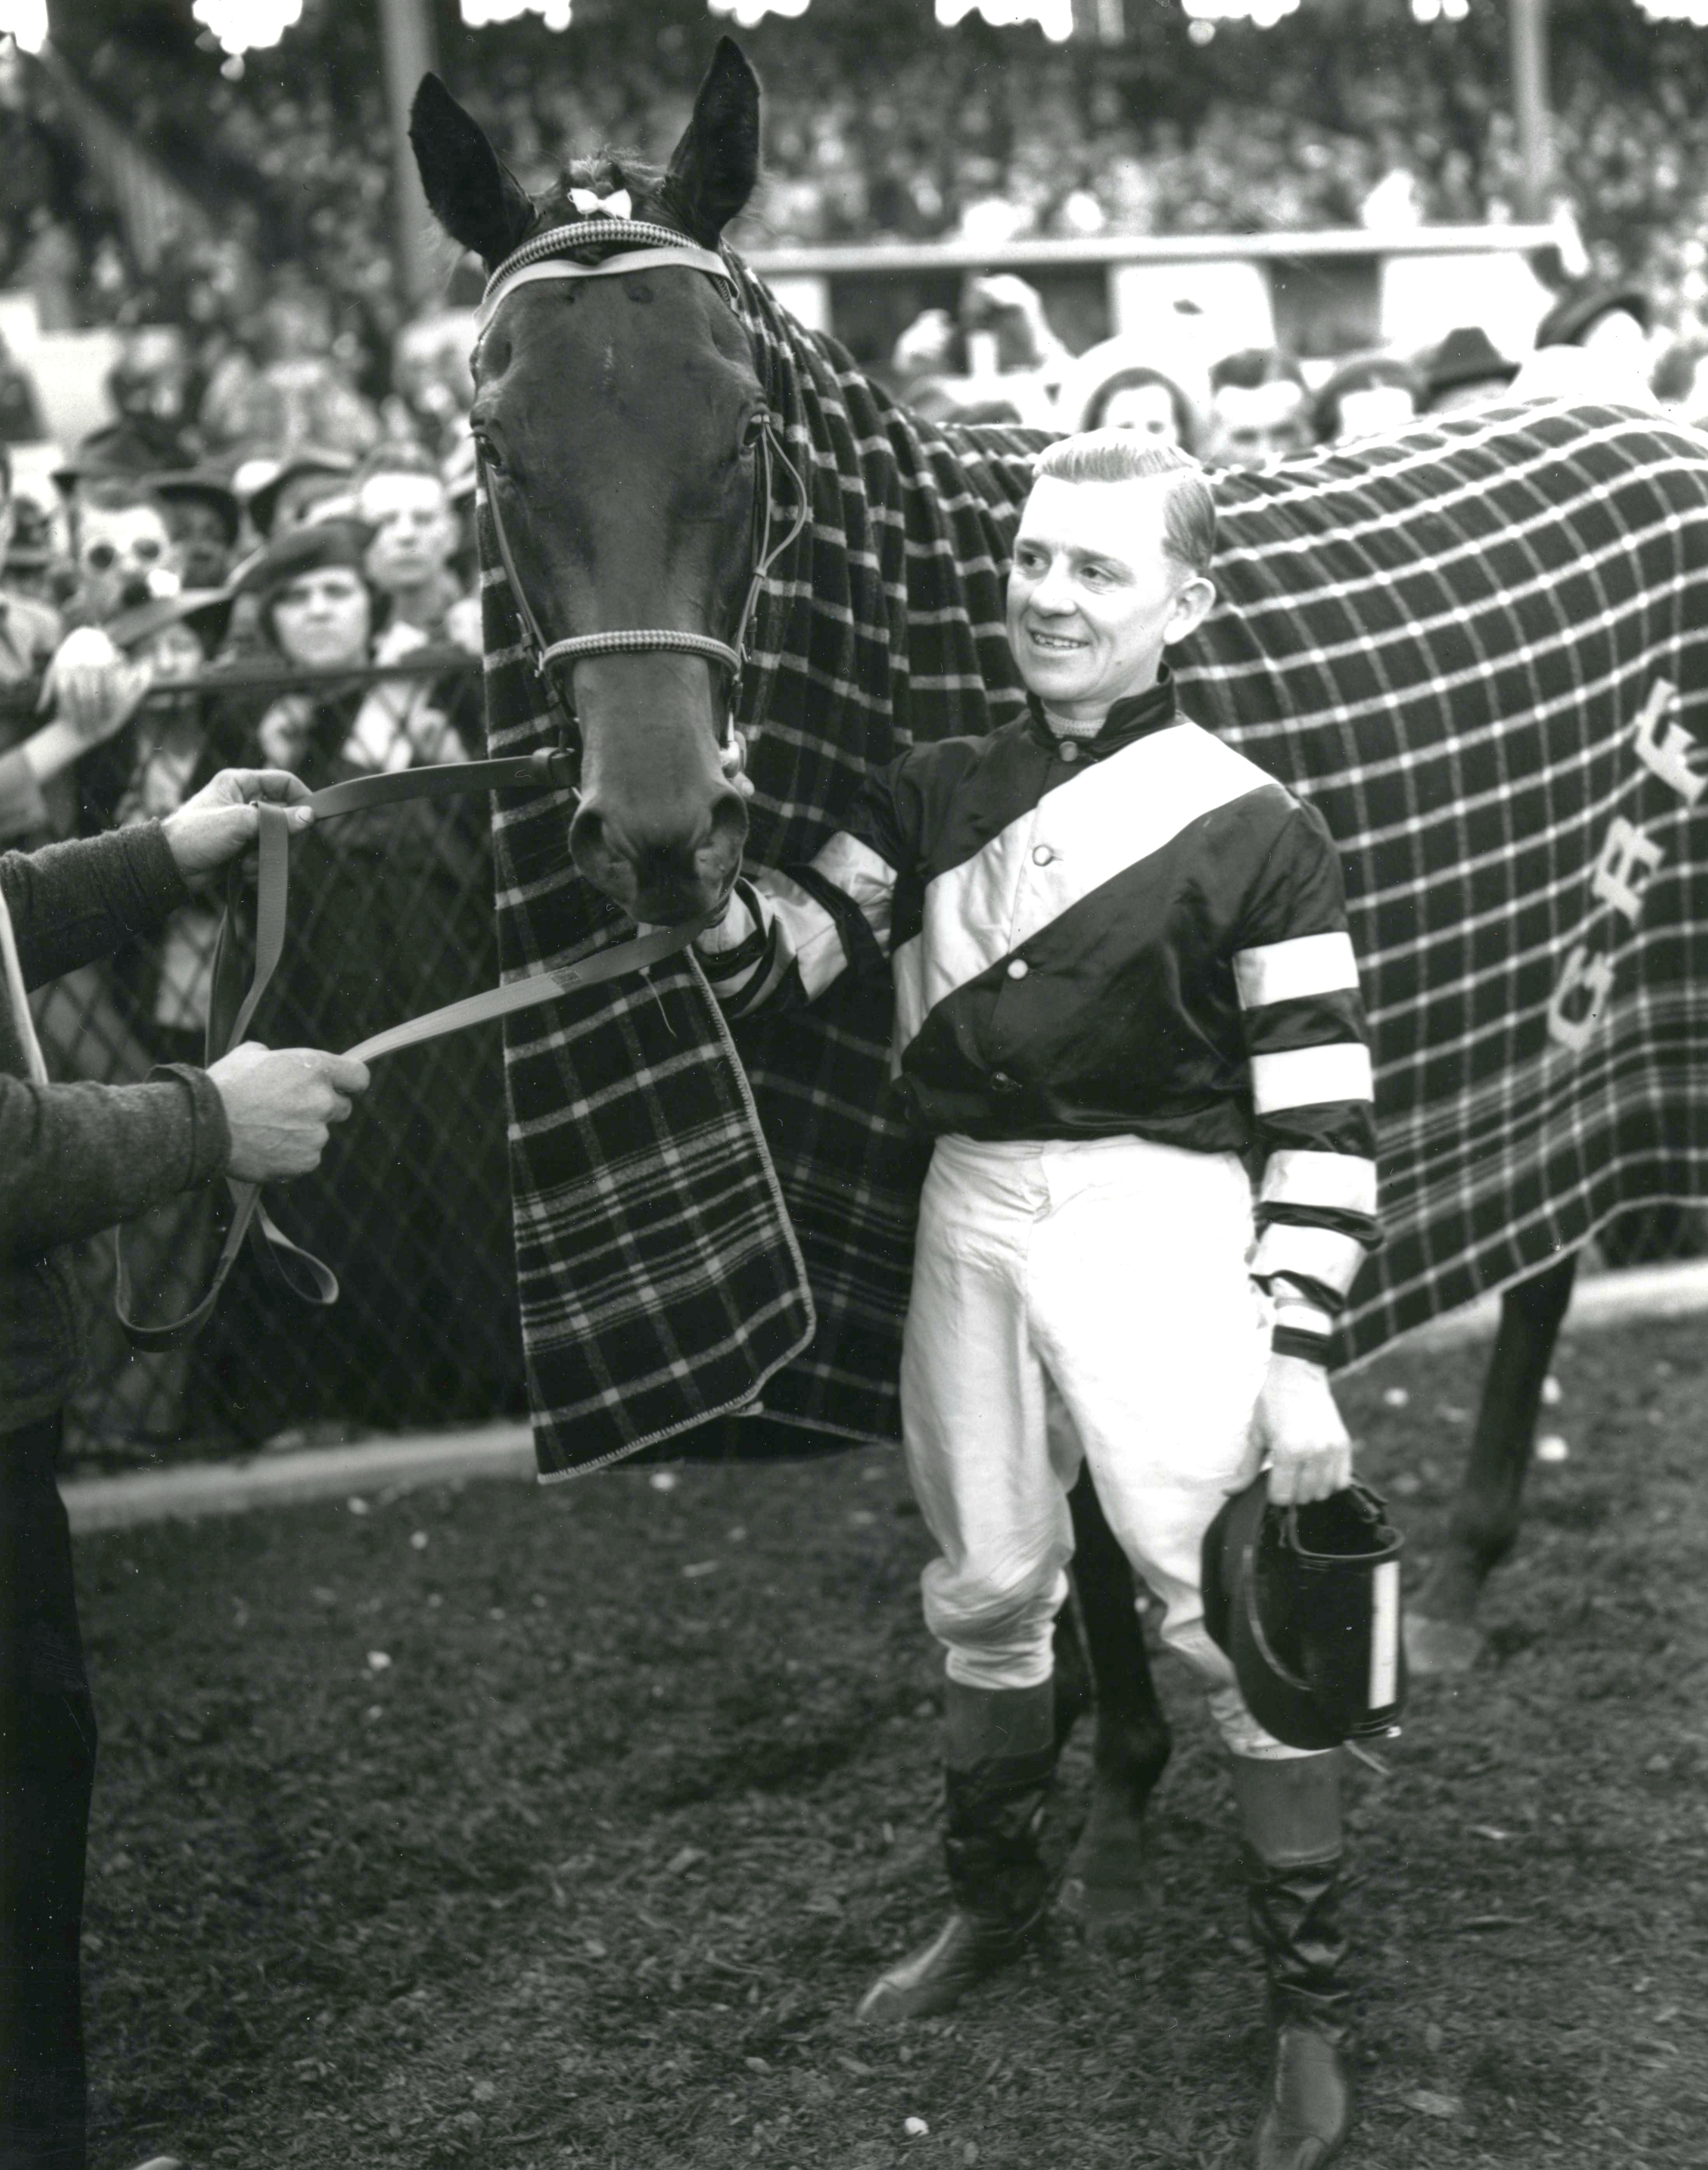 War Admiral with jockey Charles Kurtsinger after winning the 1937 Preakness at Pimilico (Keeneland Library Morgan Collection/Museum Collection)